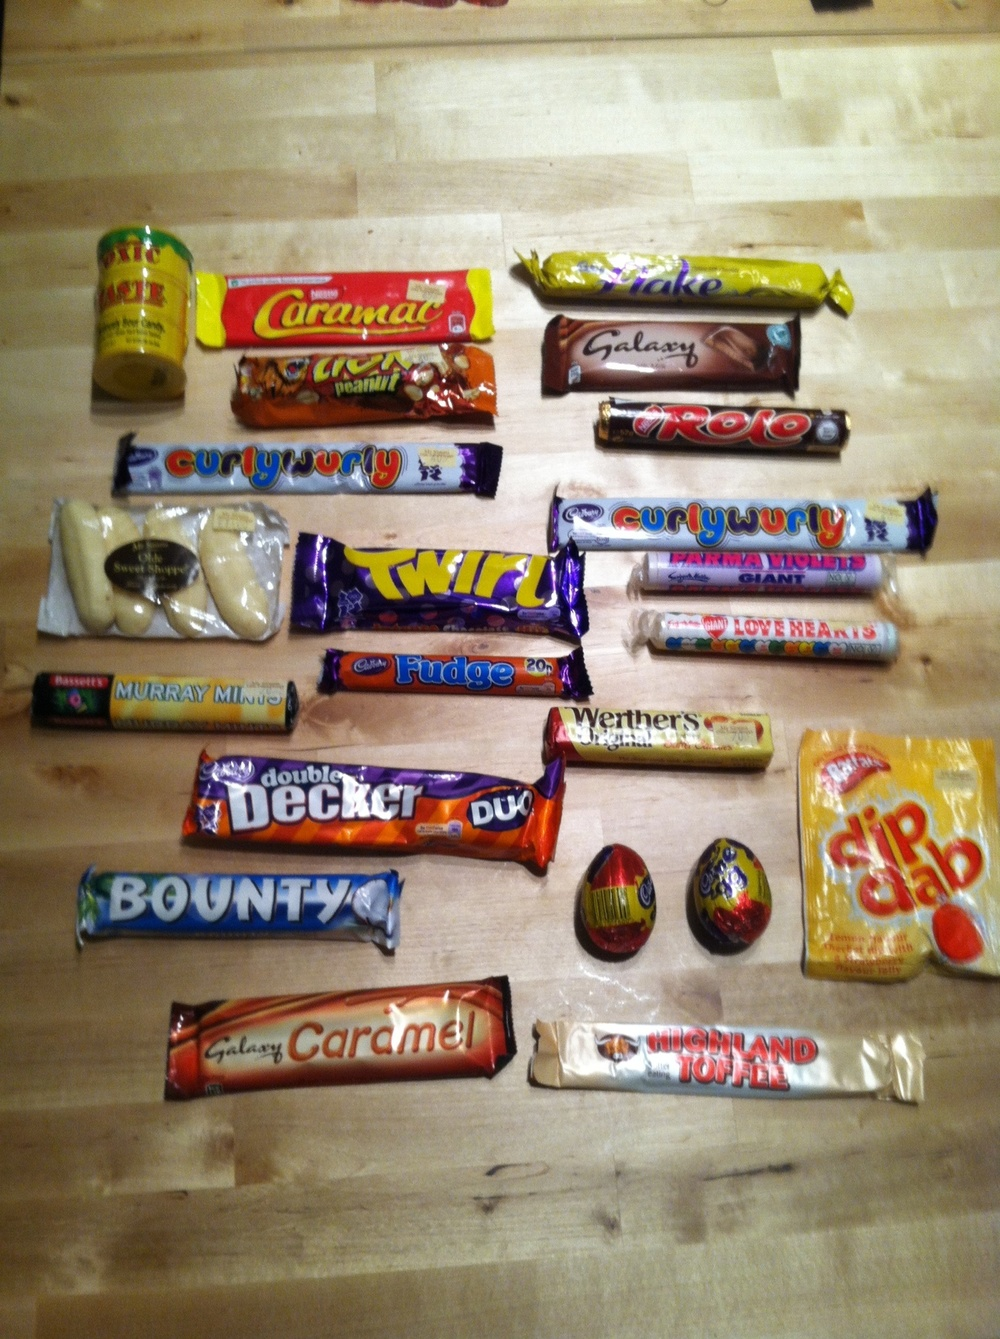 Lot's of treats from the UK!